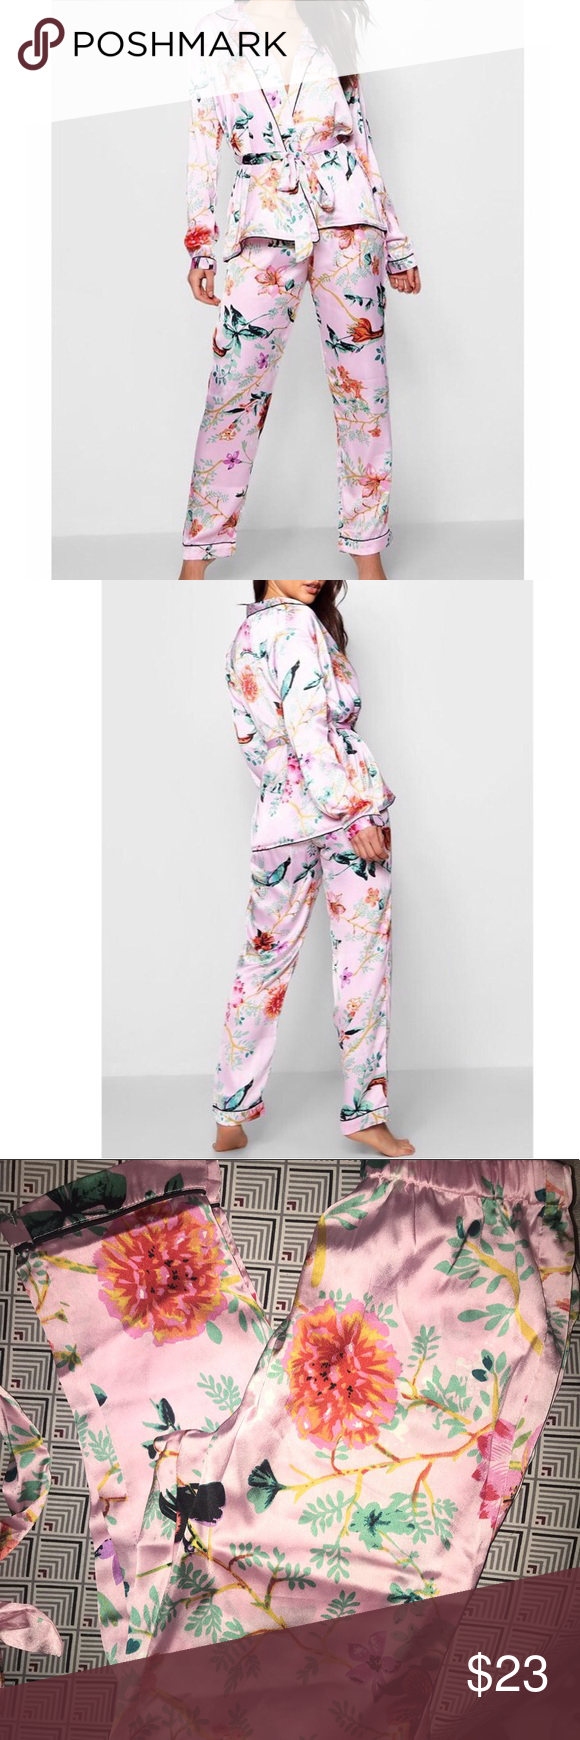 d93838e8469 Boohoo Floral Satin Pajama Set Wrap front belted PJ Brand new with tags  Pink Floral Satin